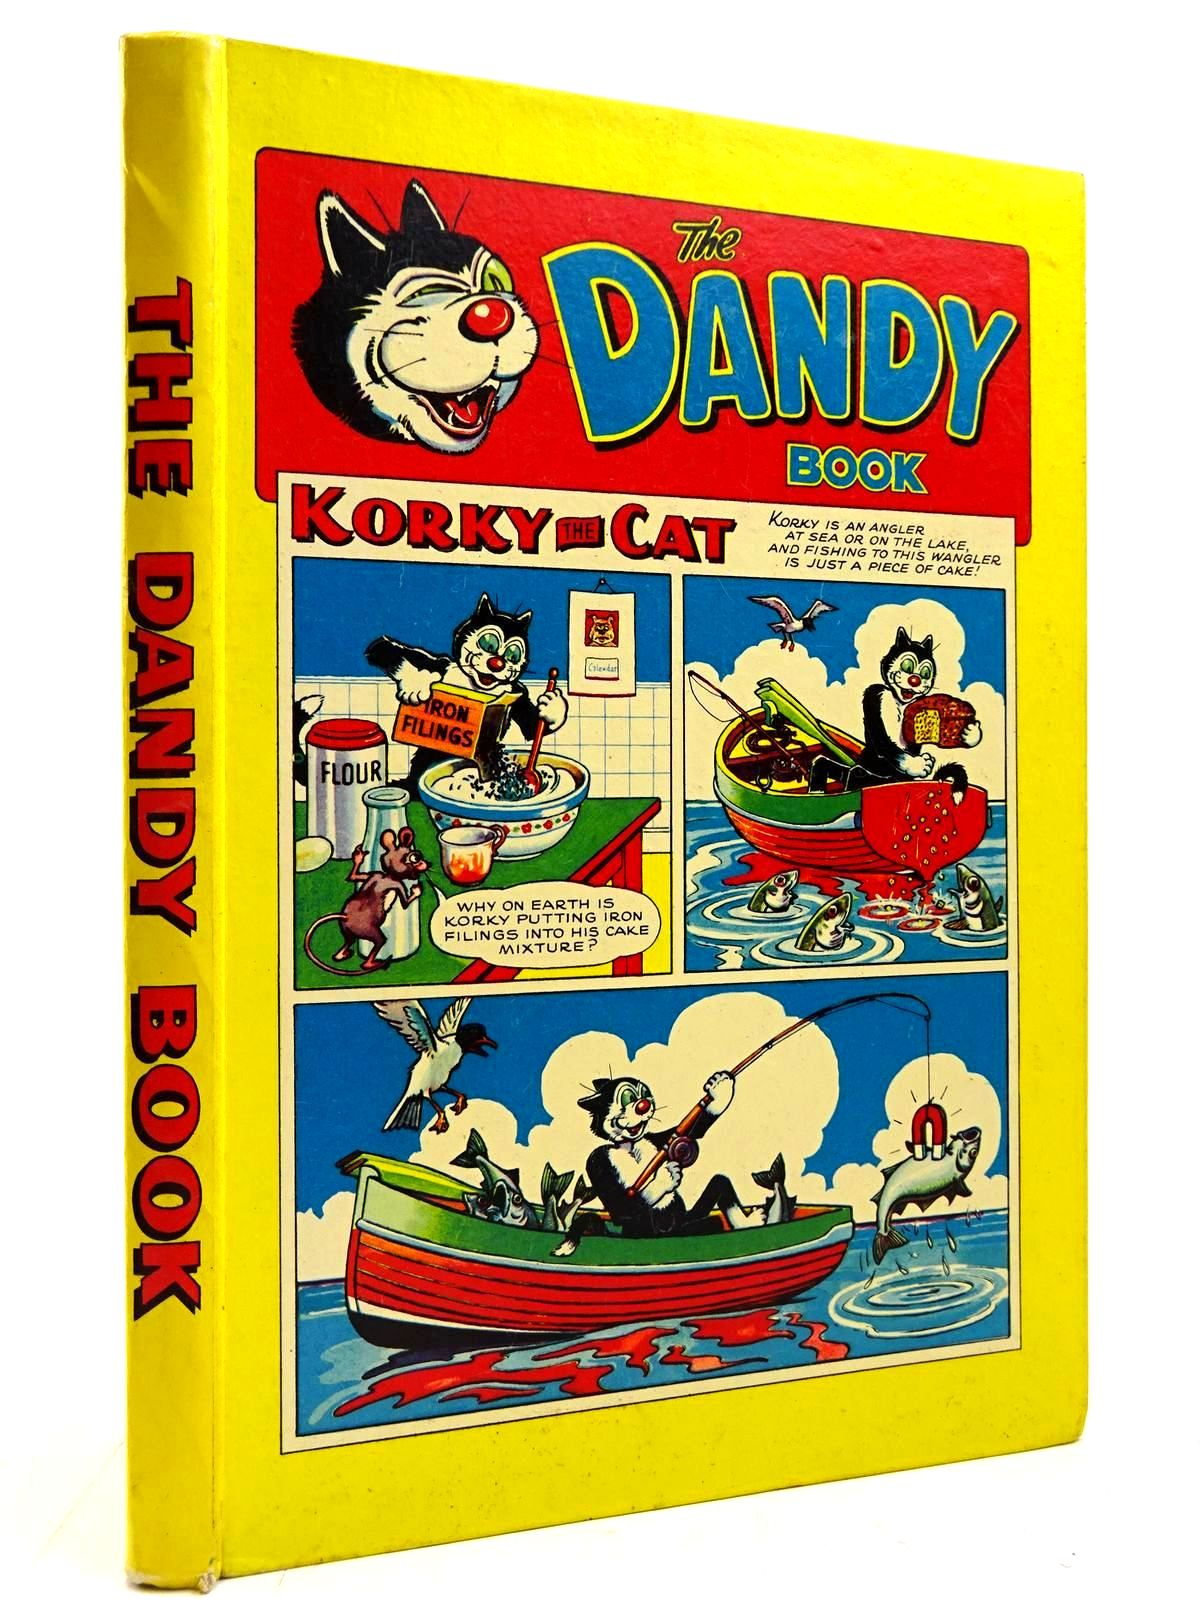 Photo of THE DANDY BOOK 1958 published by D.C. Thomson & Co Ltd. (STOCK CODE: 2130940)  for sale by Stella & Rose's Books